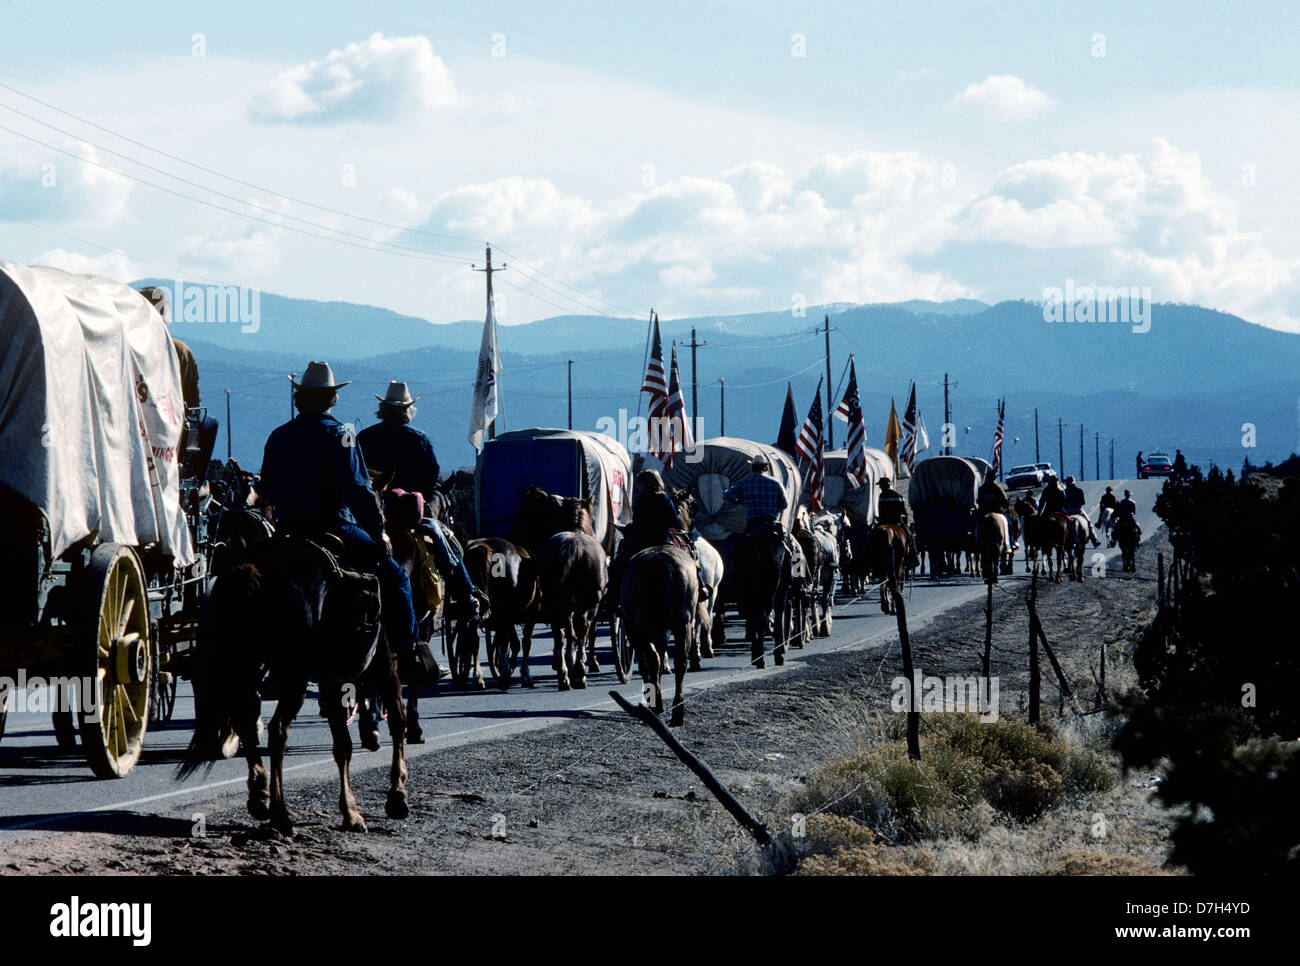 riders and wagons of the bicentennial wagon train leaving santa fe on the journey across america in 1976 - Stock Image